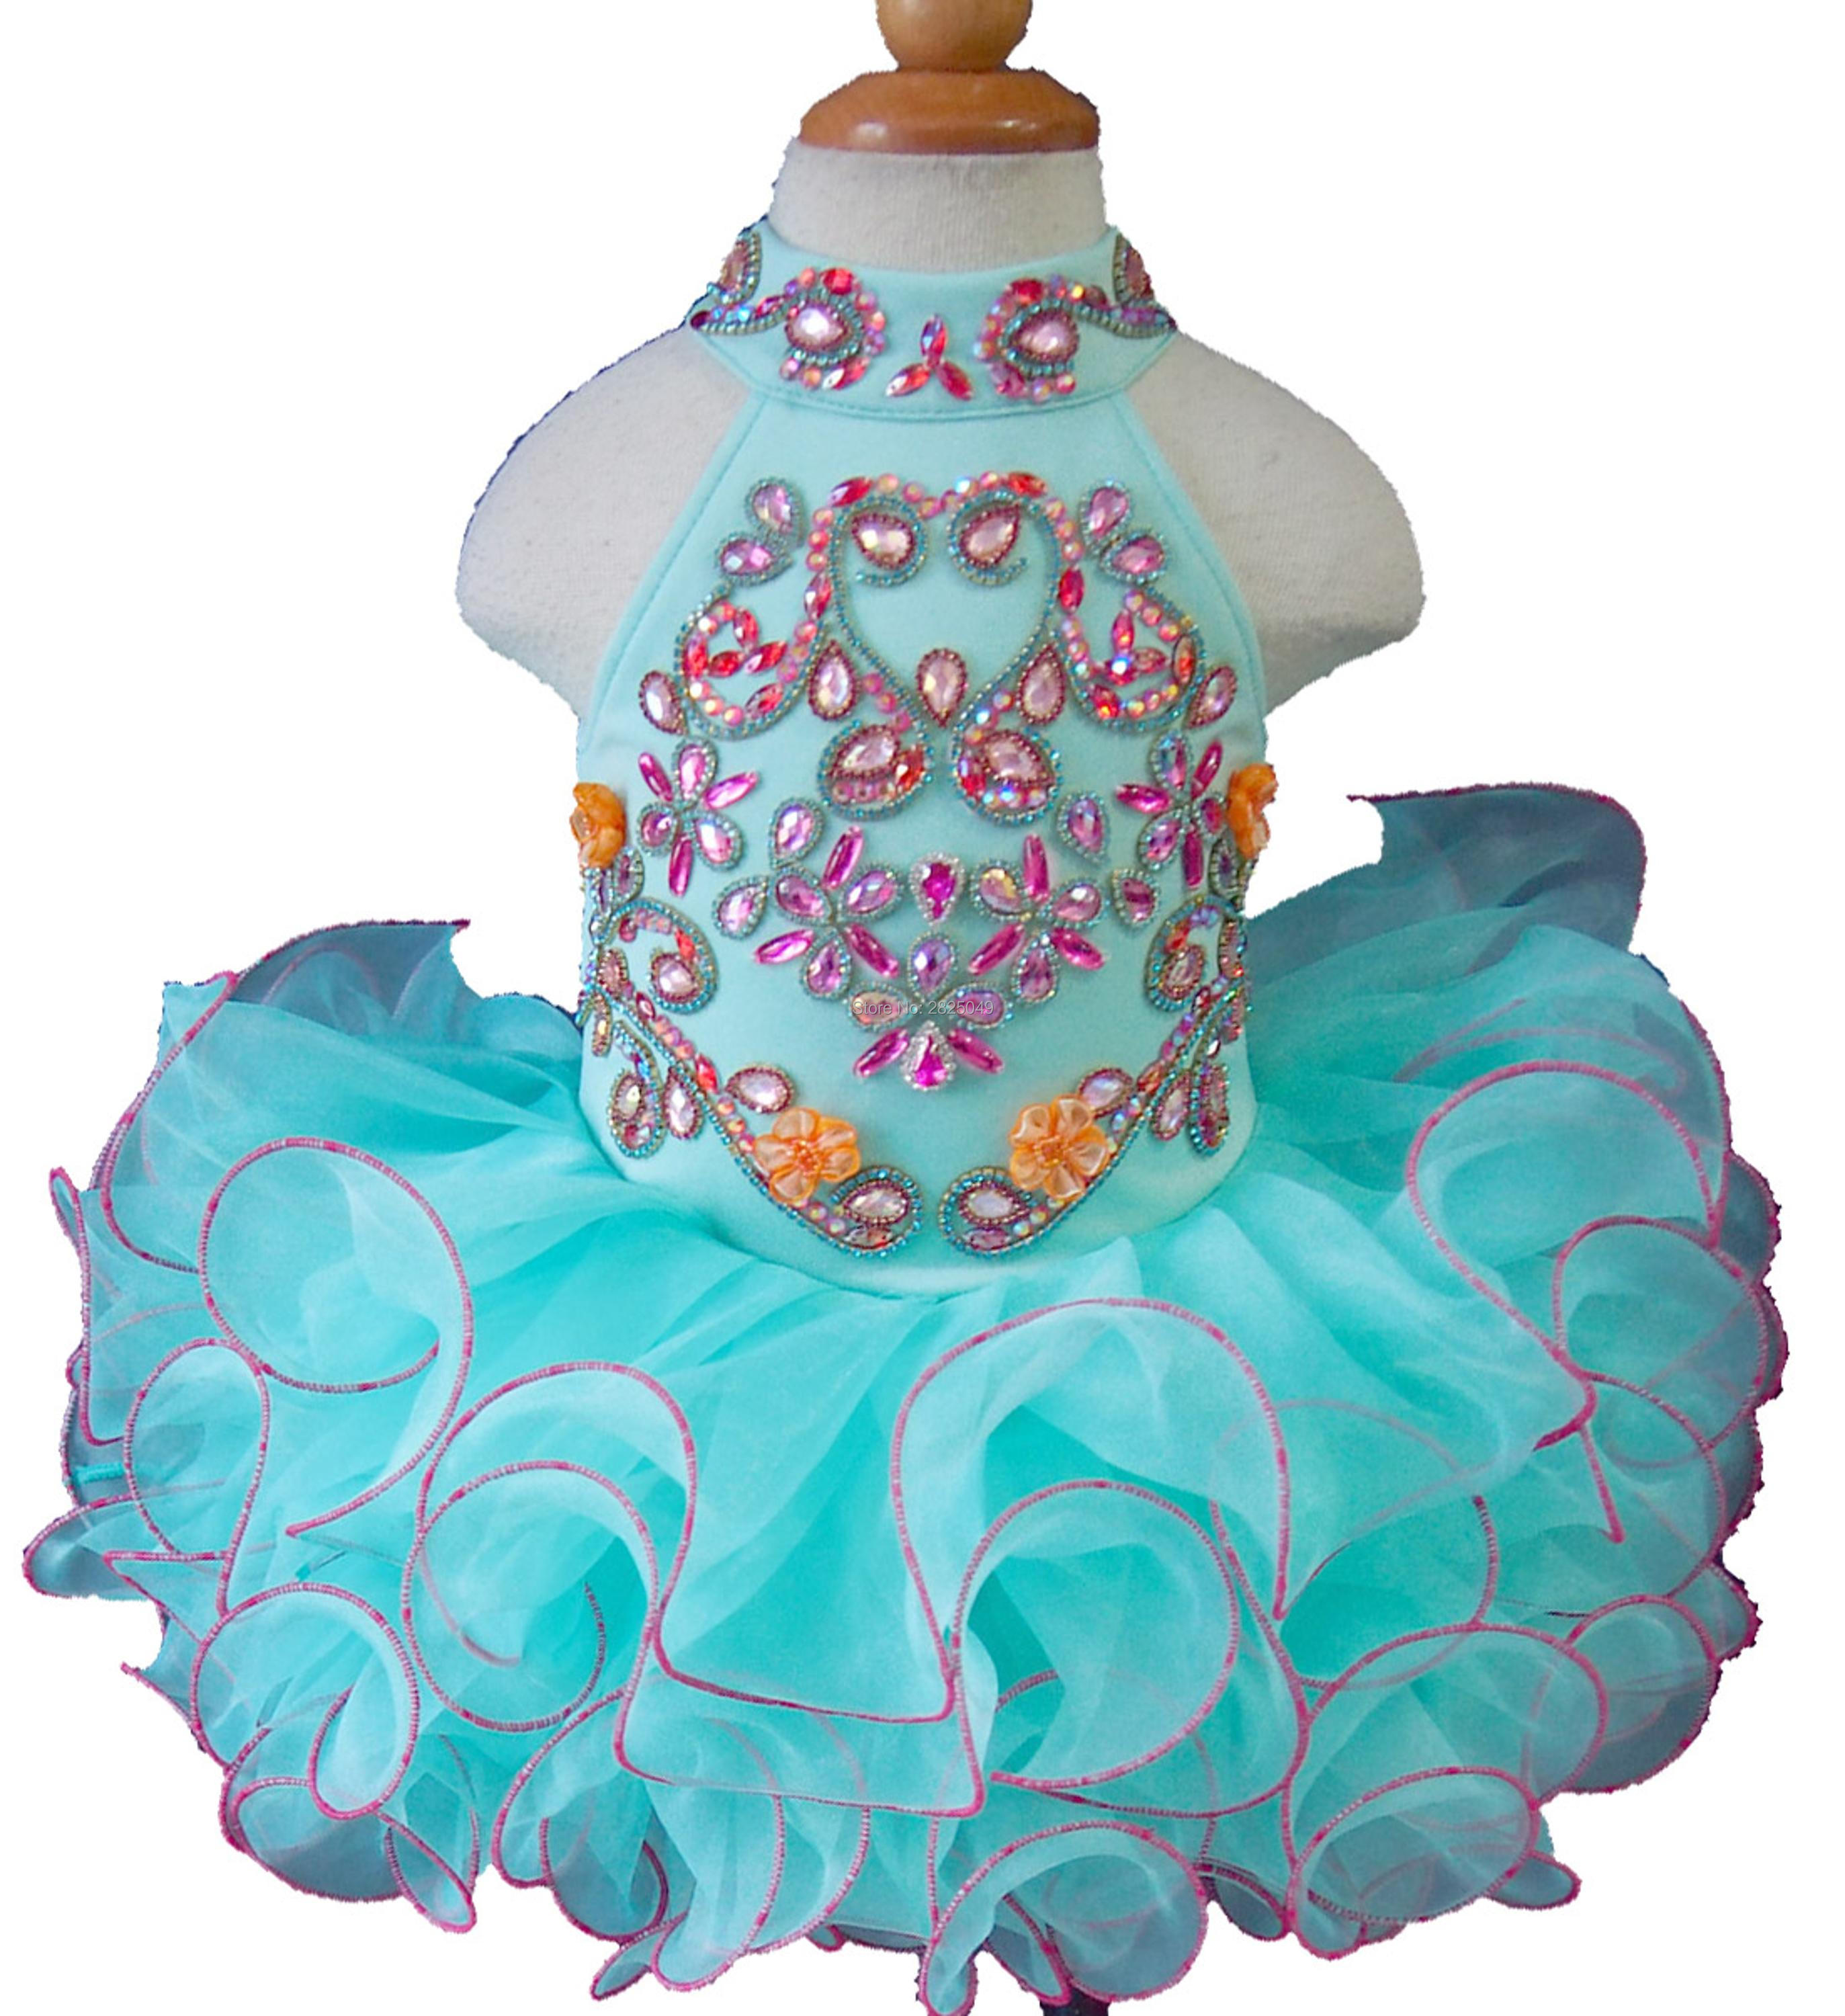 baby  and toddler girl clothes  girl dresses  flower girl dresses girl party dresses1T-6T G284D